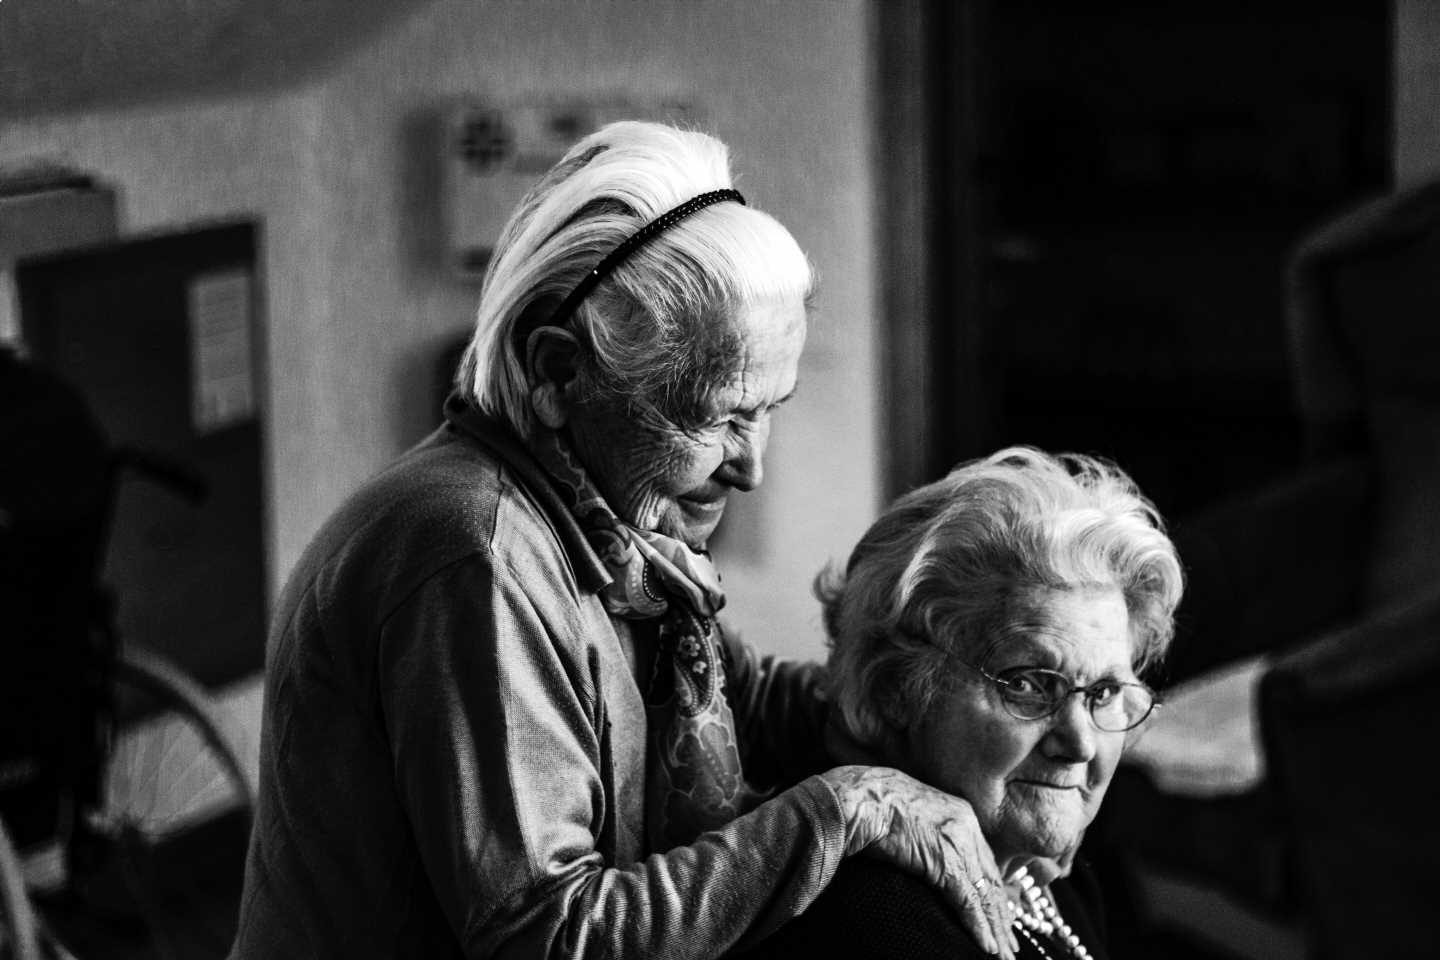 COVID lockdown loneliness linked to more depressive symptoms in older adults